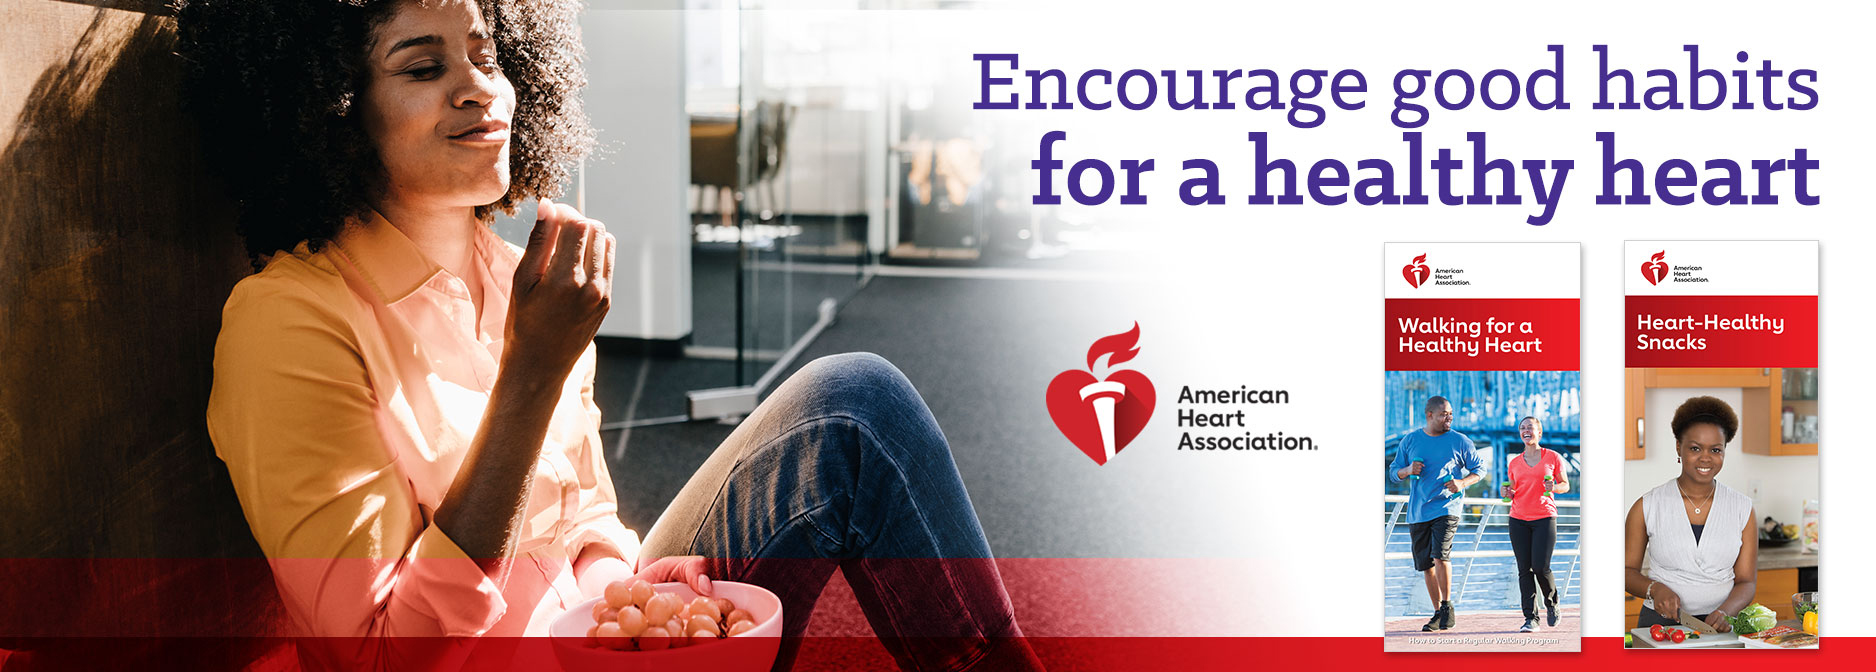 Encourage good habits for a healthy heart